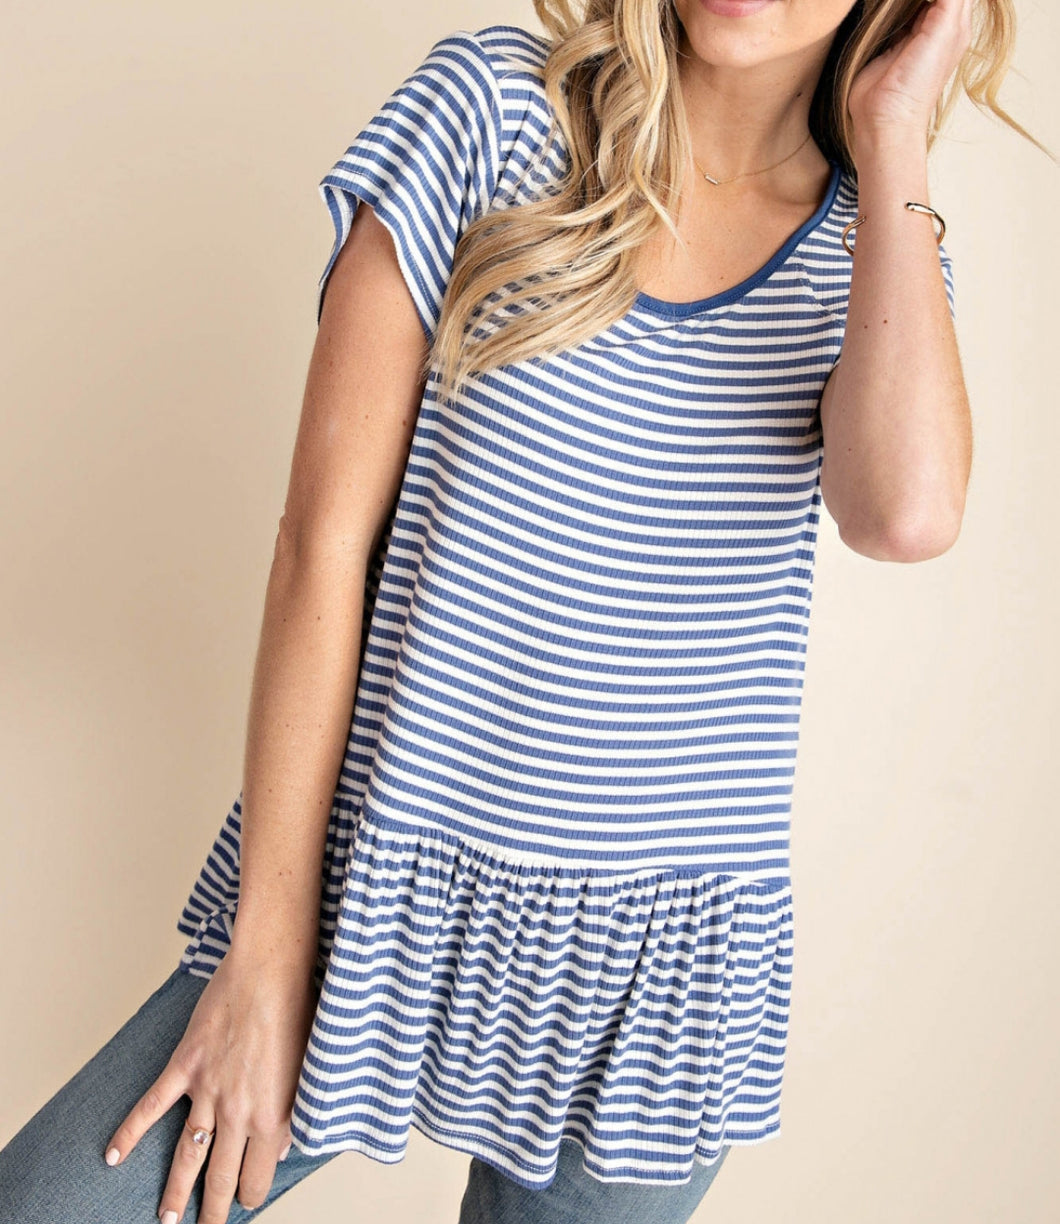 Indigo and White Striped Peplum Top